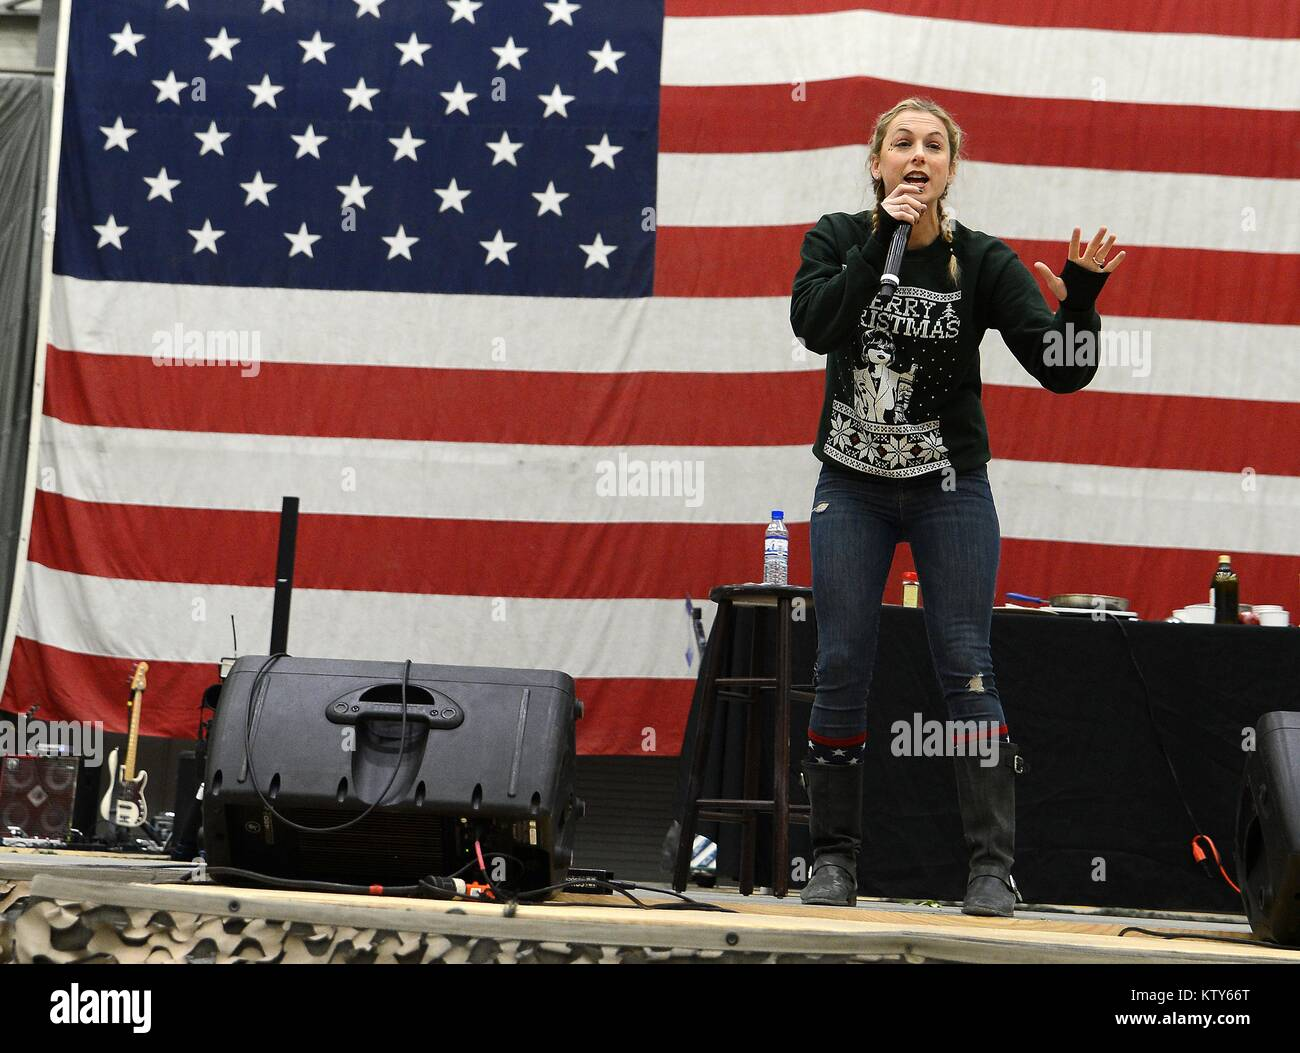 Comedian Iliza Shlesinger performs for U.S. soldiers during the USO Holiday Tour at the Bagram Airfield December - Stock Image